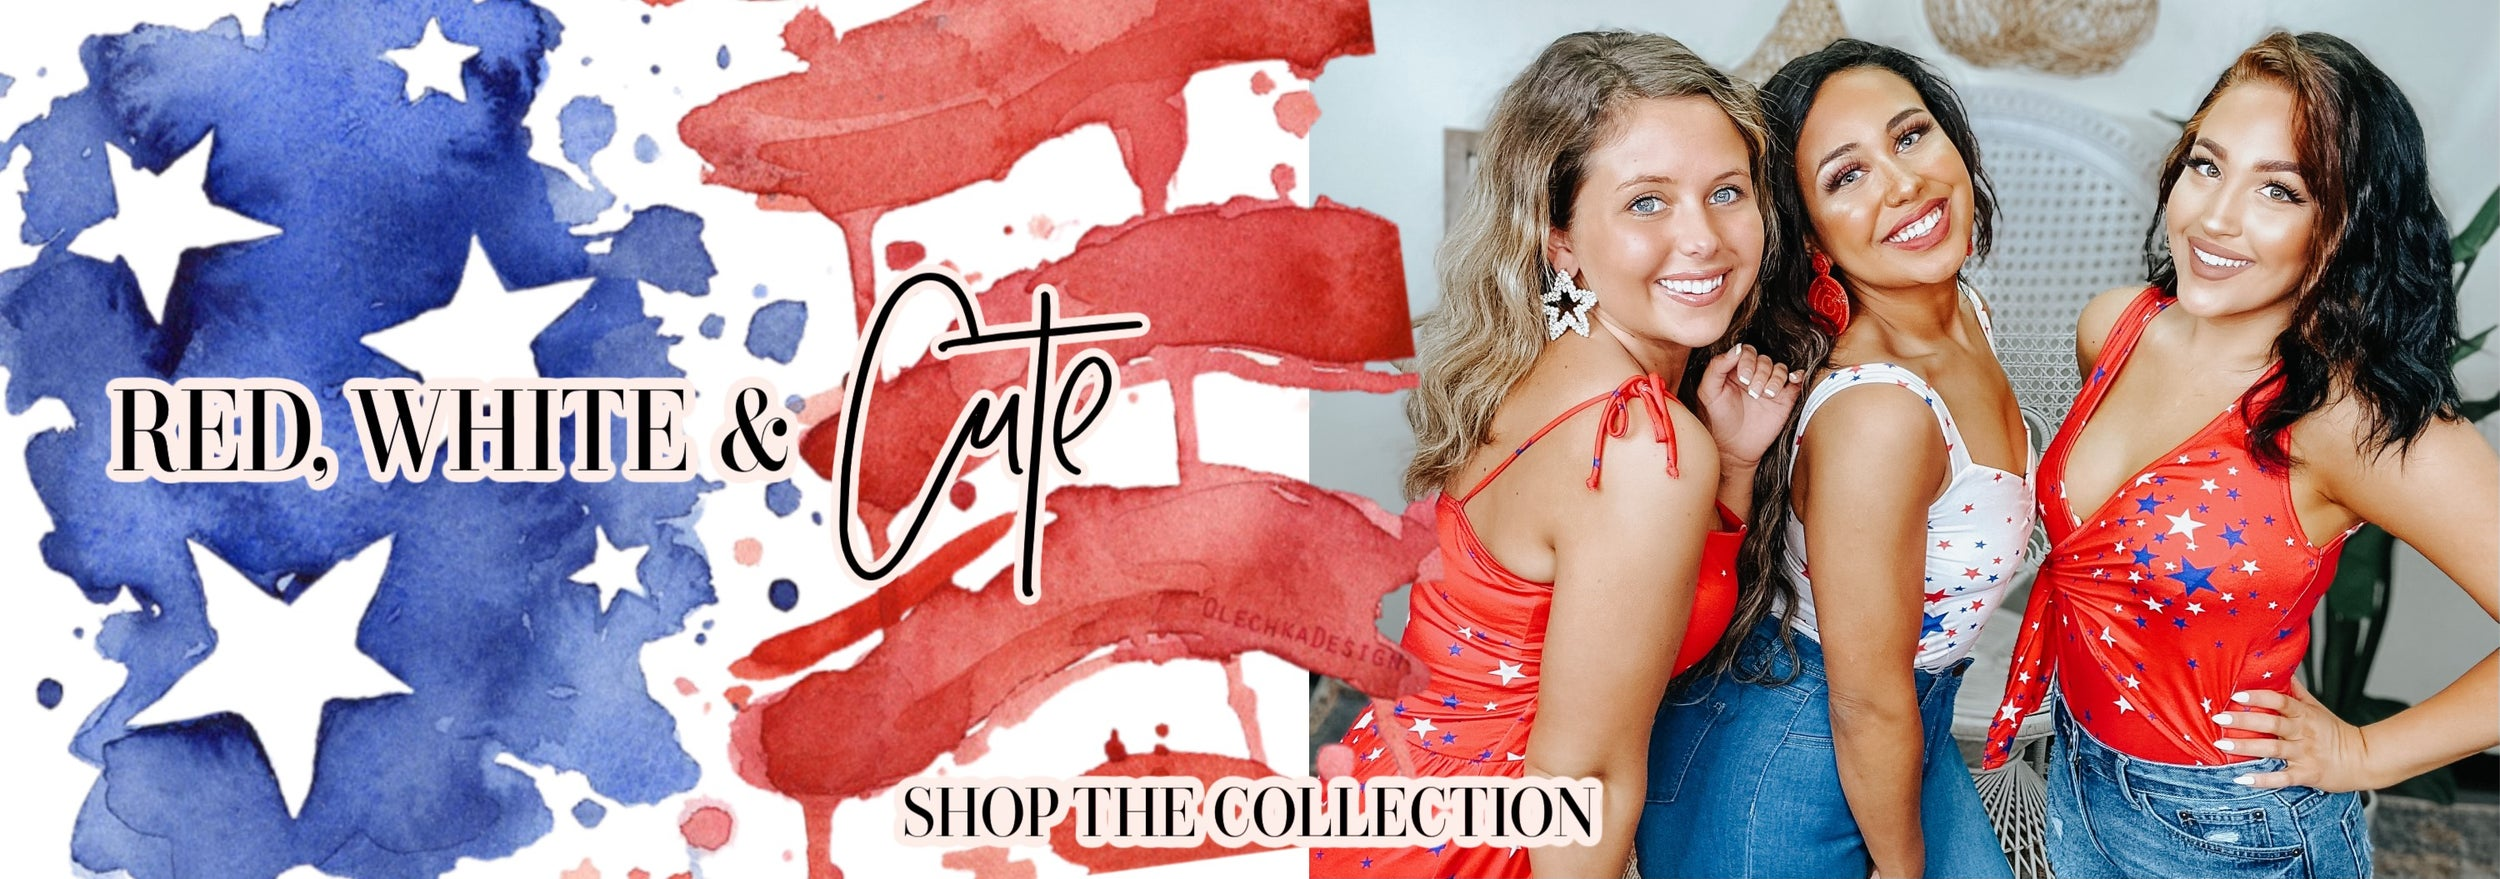 RED, WHITE, & BLUE COLLECTION